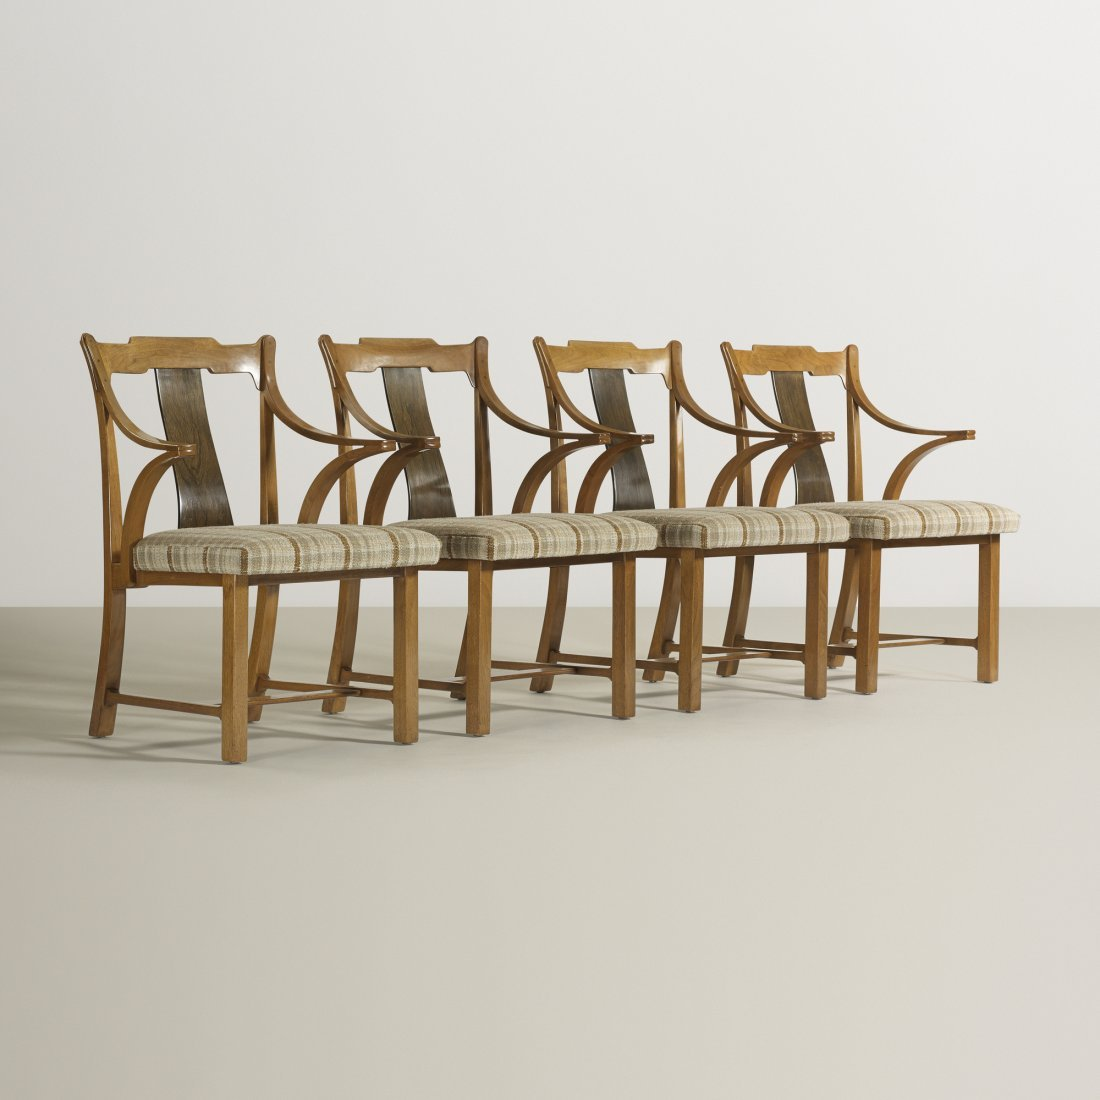 Edward Wormley chairs model 5718, set of four